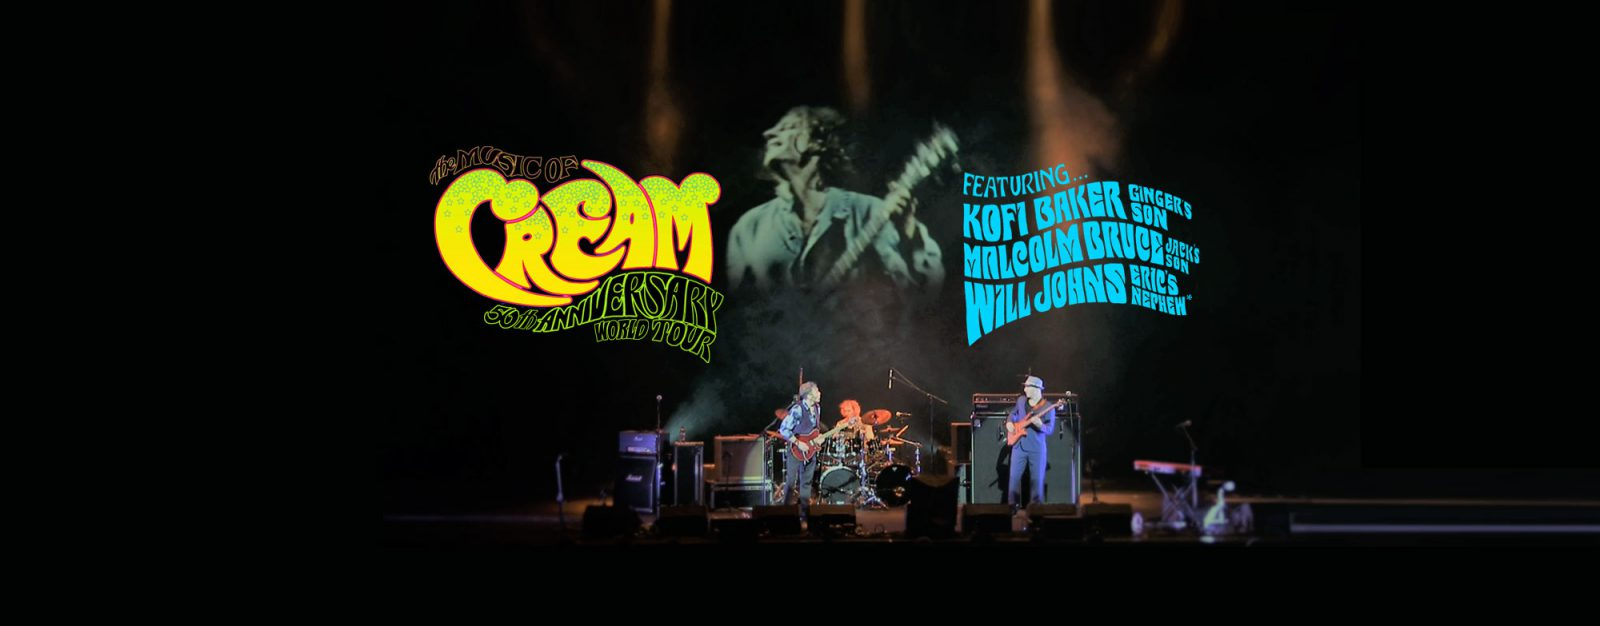 Music of Cream – 50th Anniversary World Tour